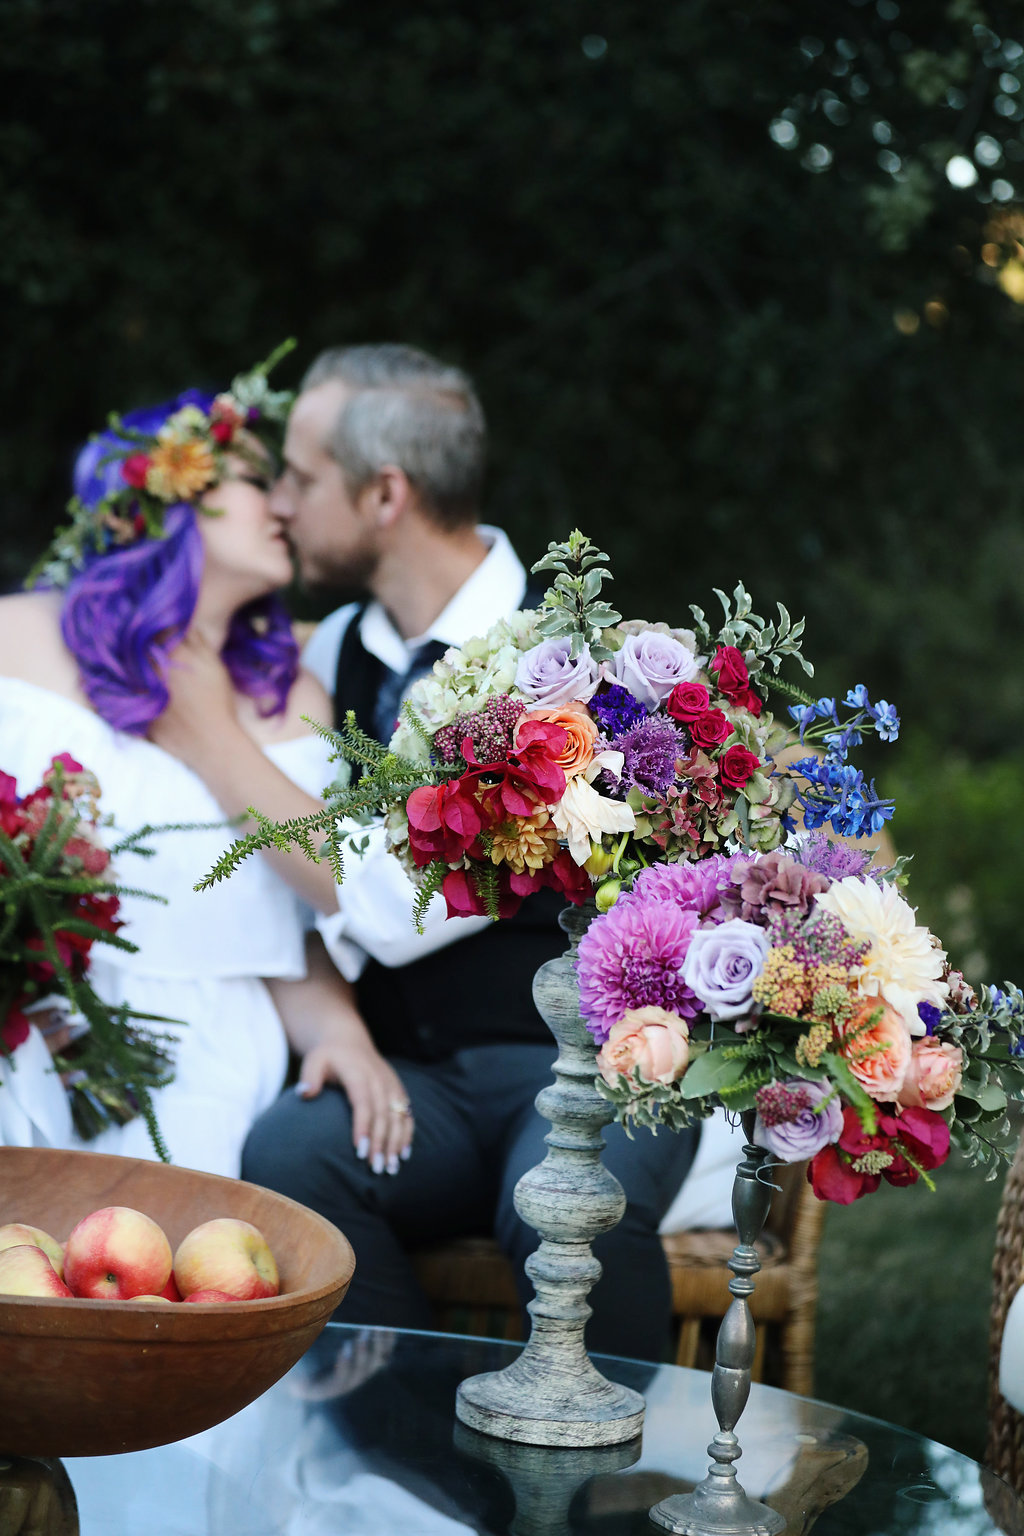 Tall colorful floral arrangements found on a mid century modern table during a bridal photo shoot. The bride had fabulous ultra violet hair. Location was Chateau Adare in the Temecula Valley.